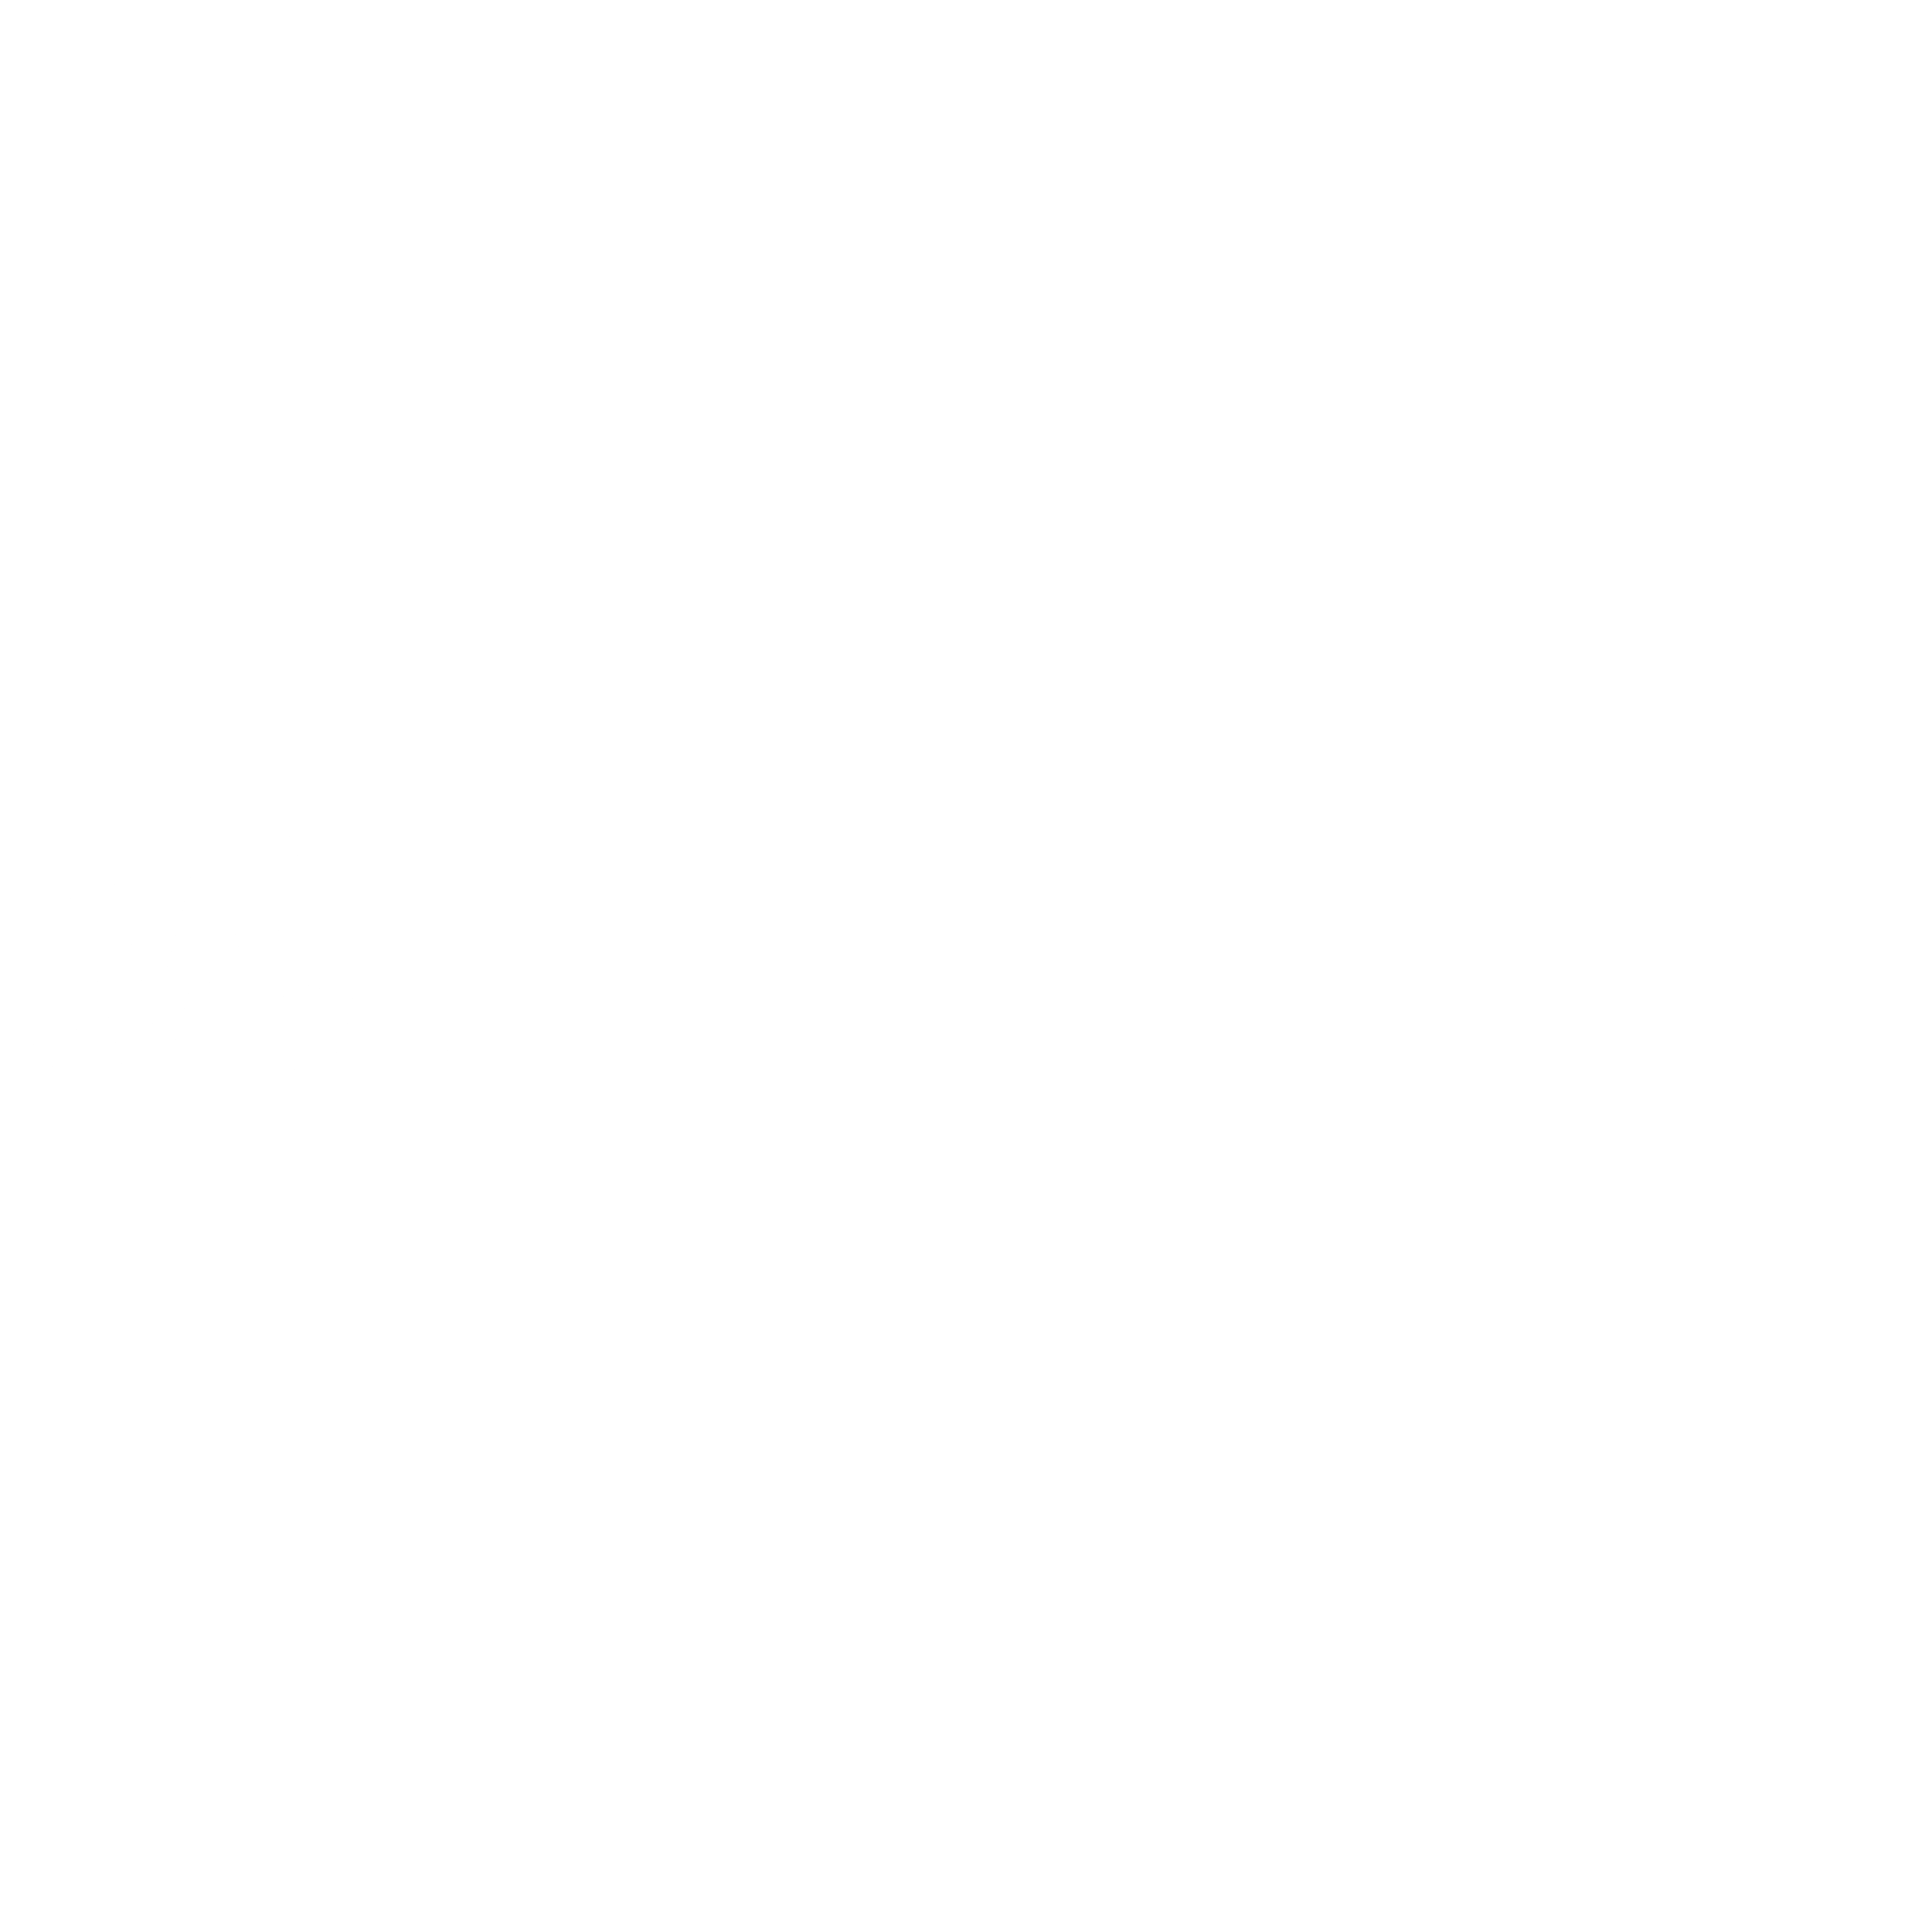 Woodward Logo PNG Transparent & SVG Vector.